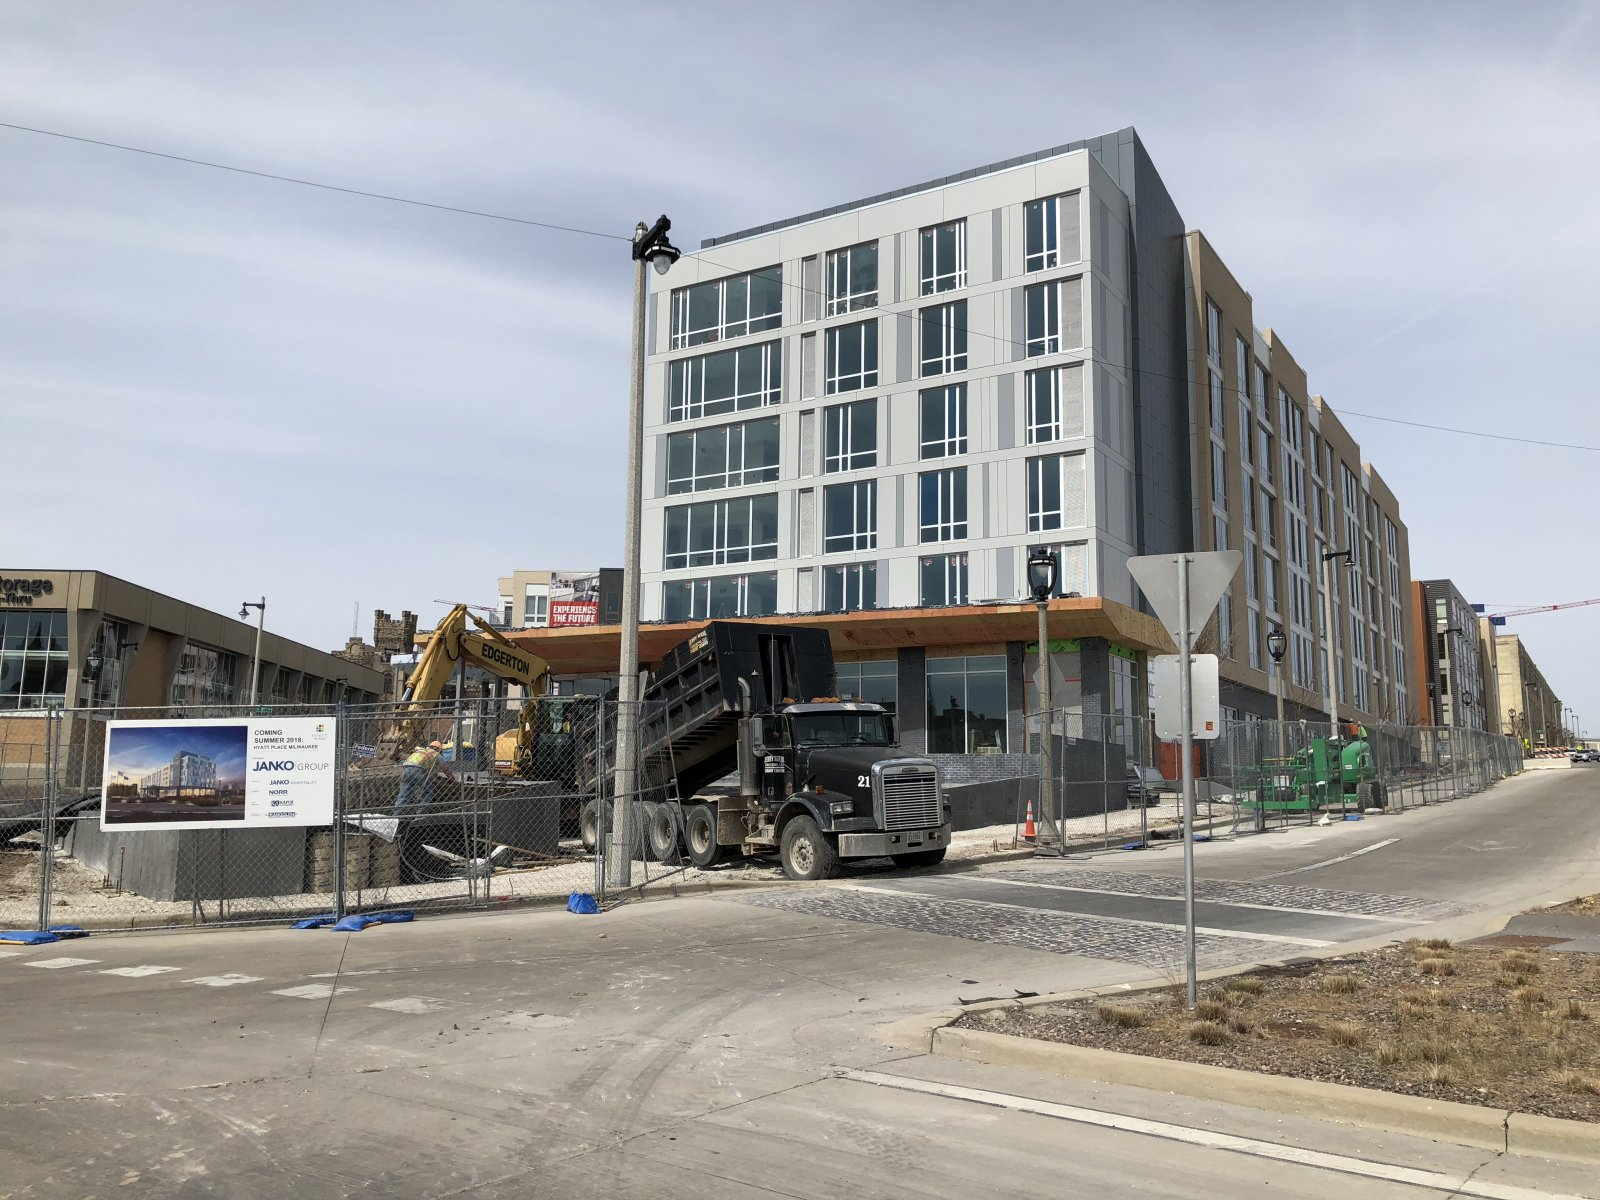 Hyatt Place Construction